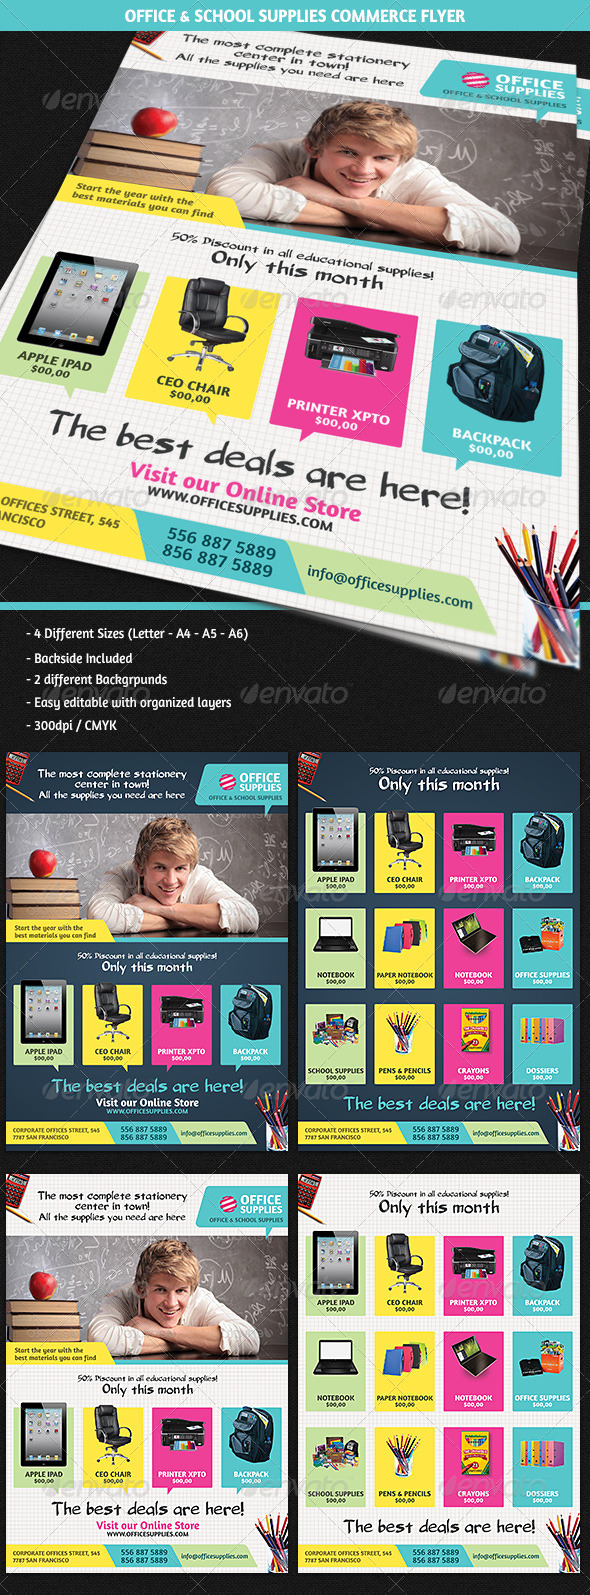 GraphicRiver Office & School Supplies Commerce Flyer 5523023